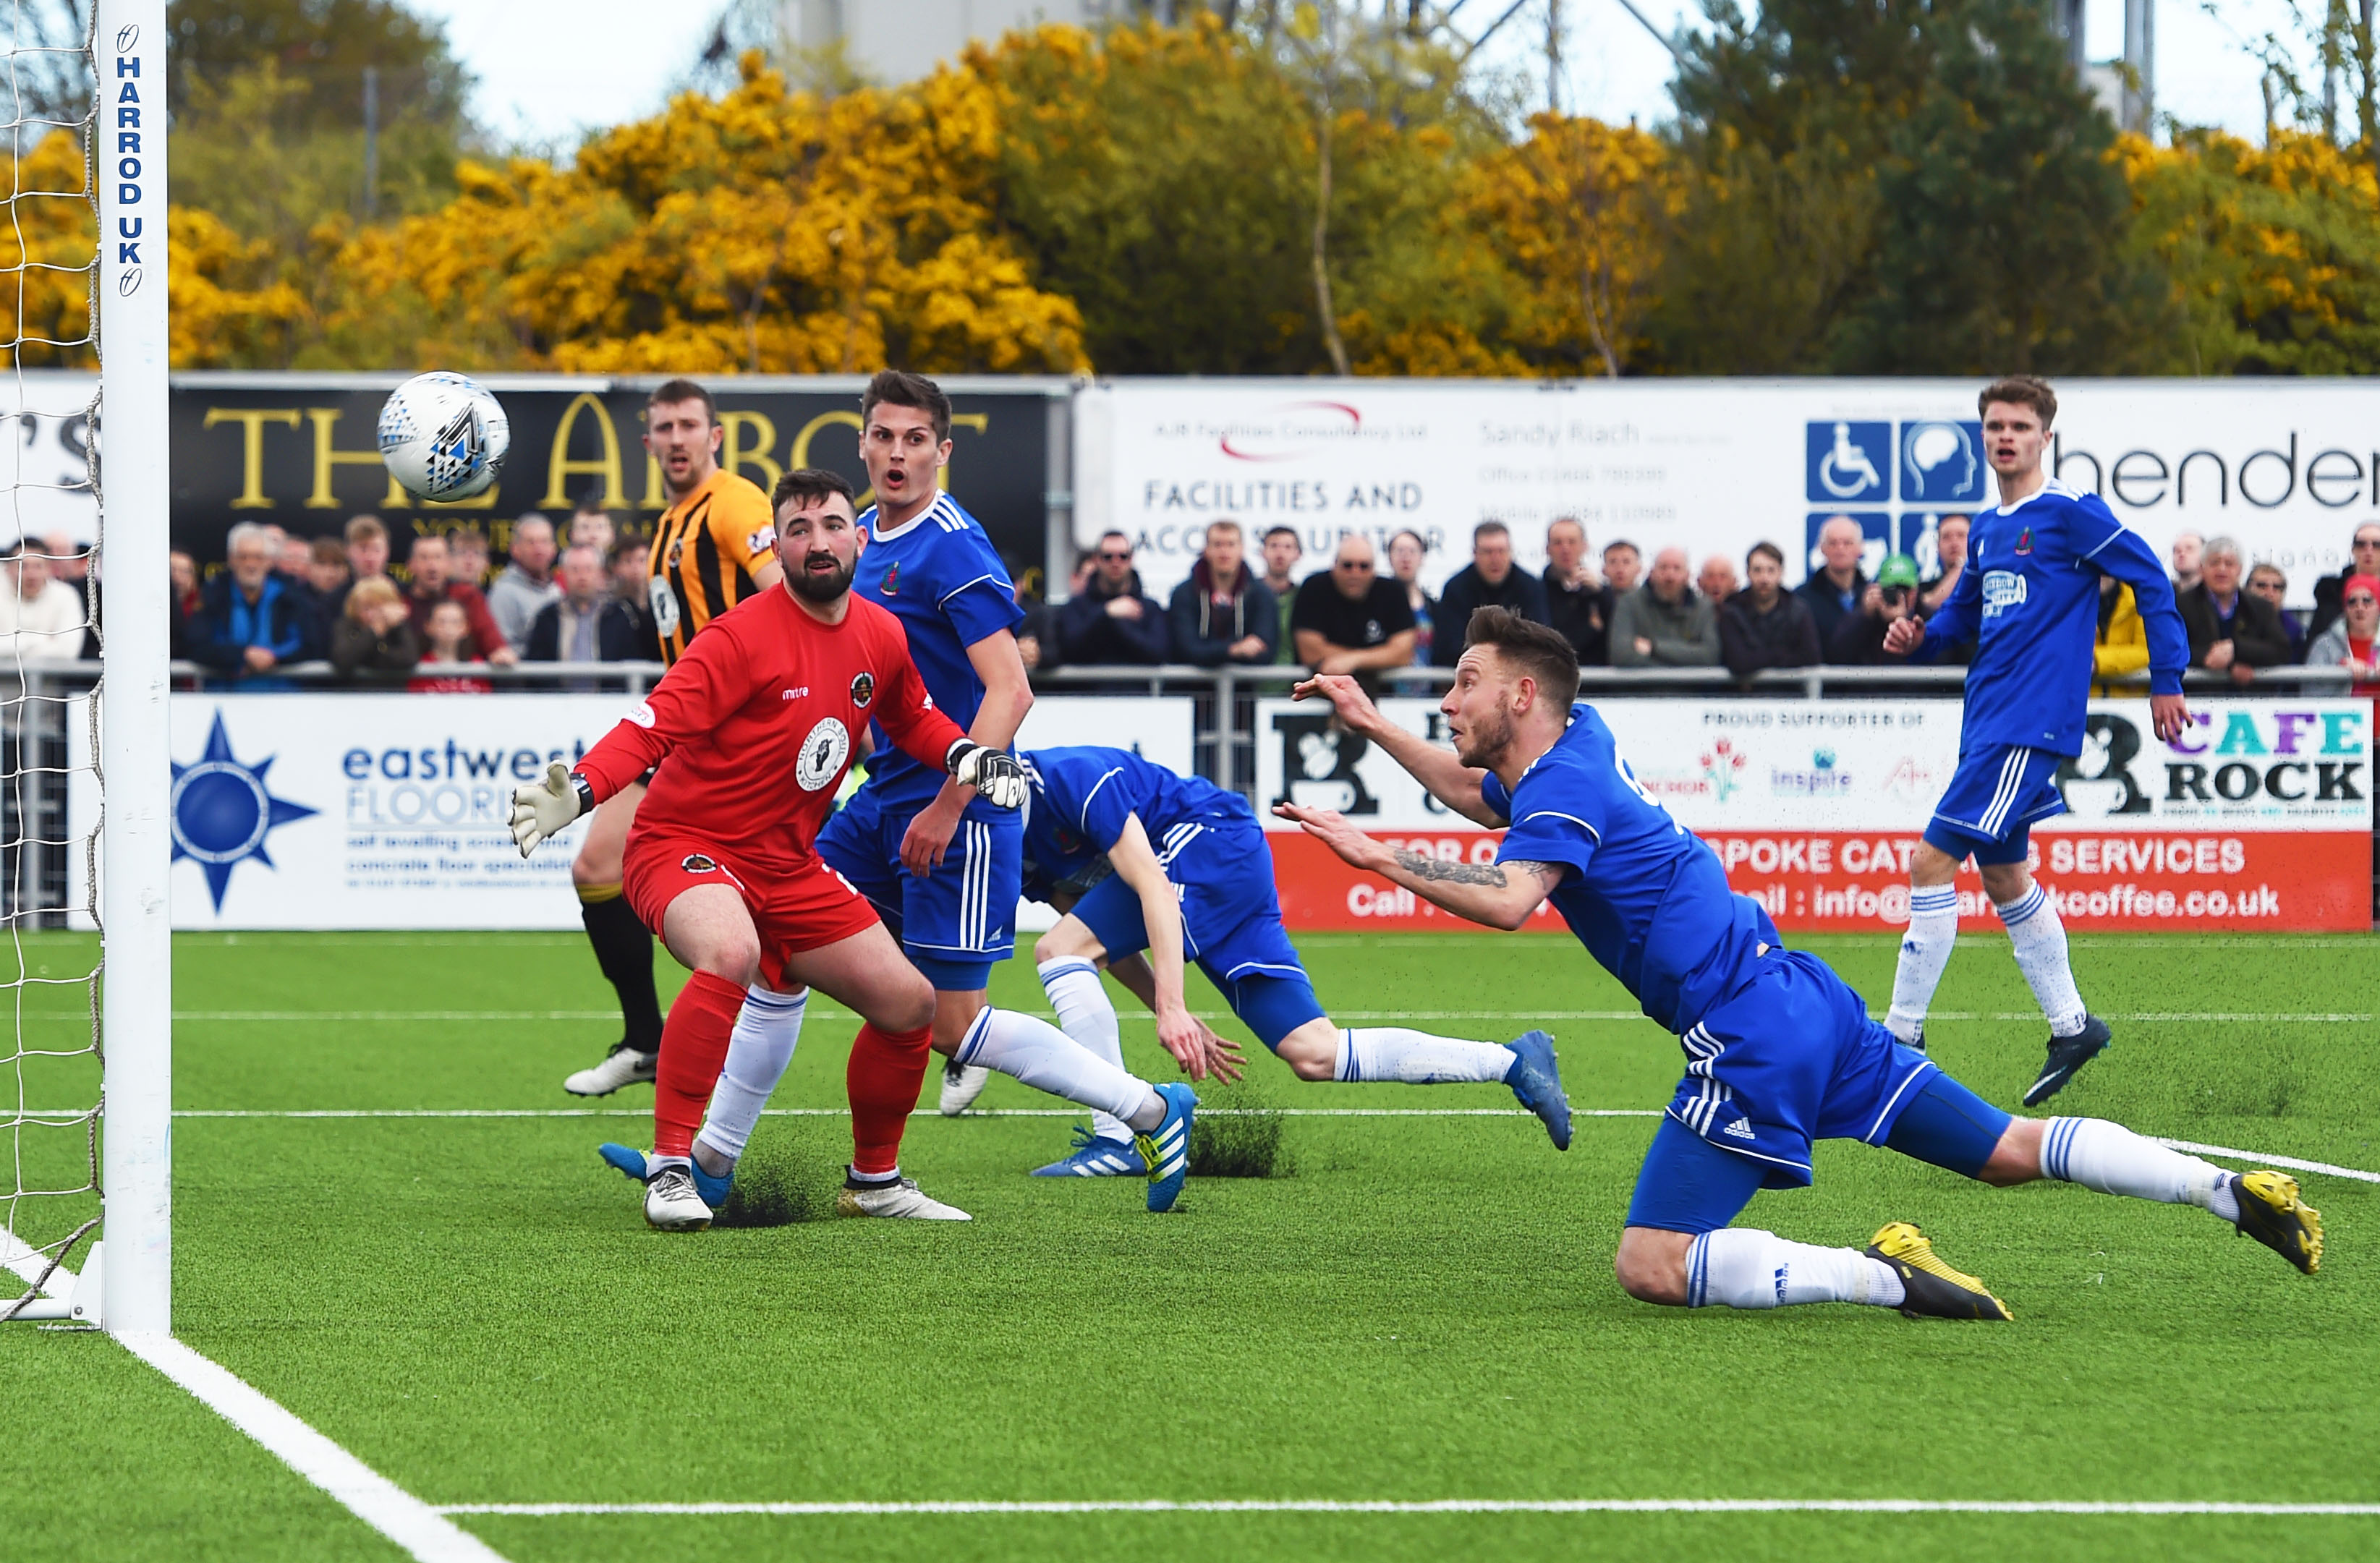 Mitchel Megginson heads home from close range to make it 2-0 to Cove Rangers.